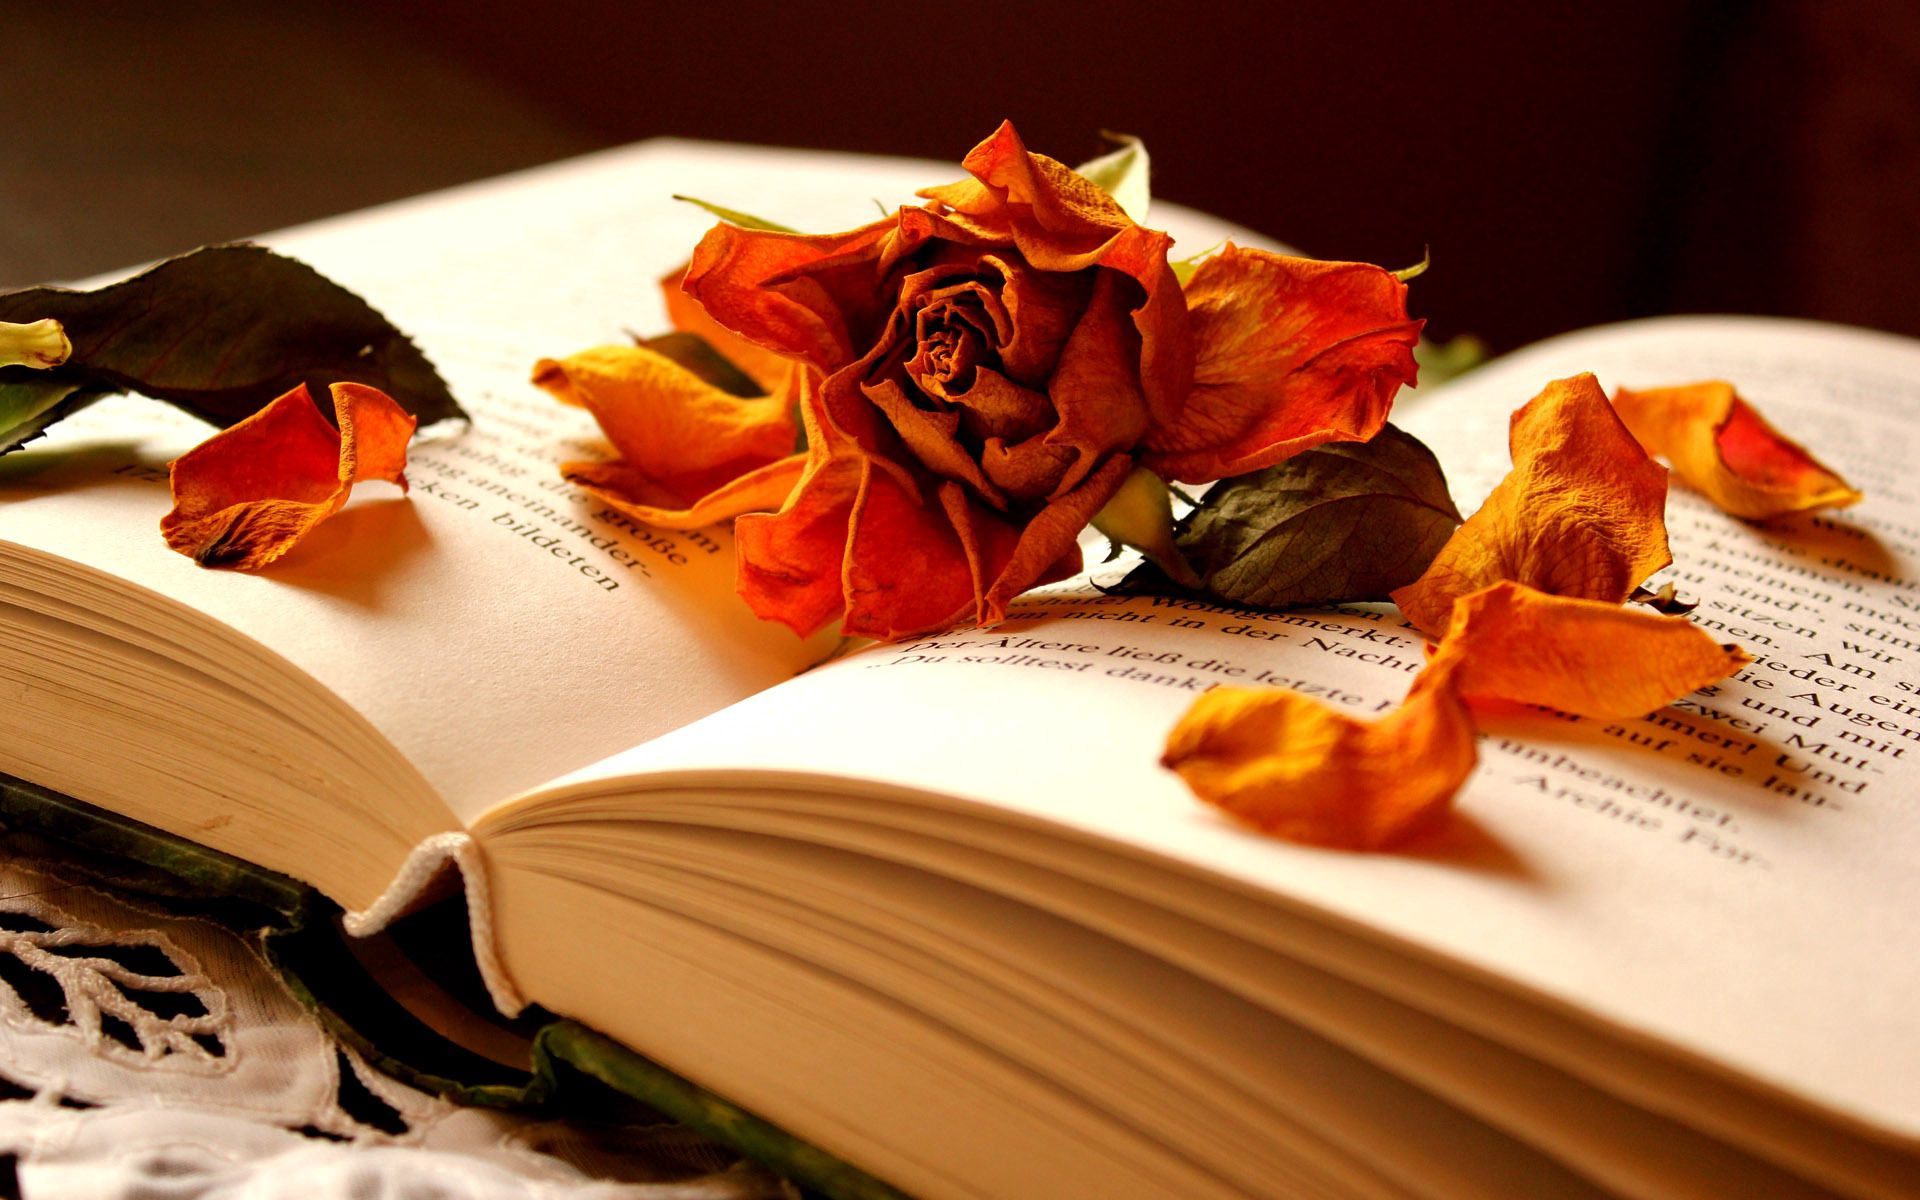 111751 Screensavers and Wallpapers Book for phone. Download Flower, Miscellanea, Miscellaneous, Rose Flower, Rose, Petals, Dry, Book pictures for free